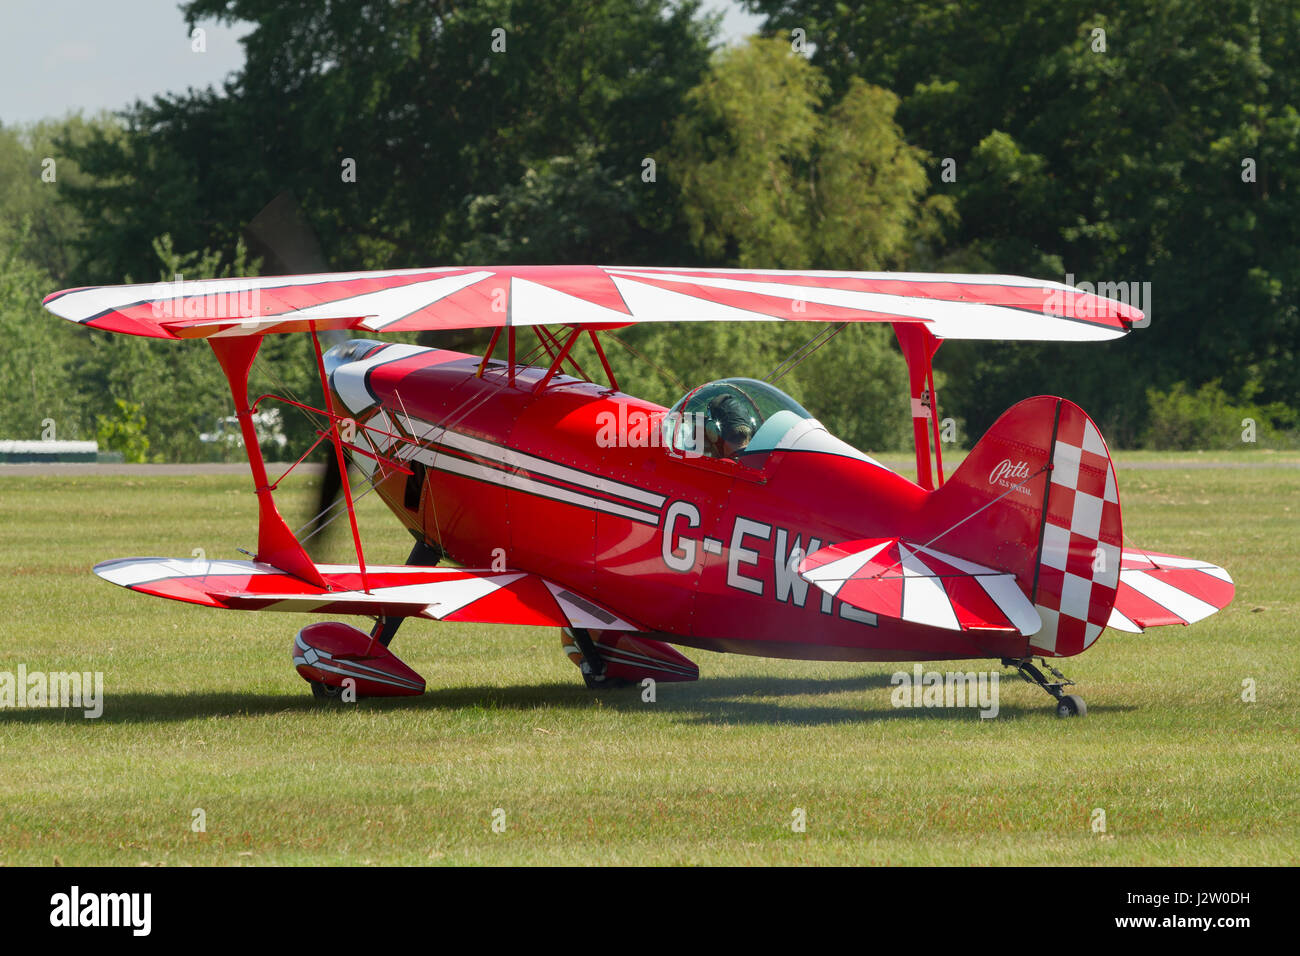 Cosford UK - June 9 2013: Pitts Special high performance aerobatic biplane first flown in 1944 and manufactured - Stock Image